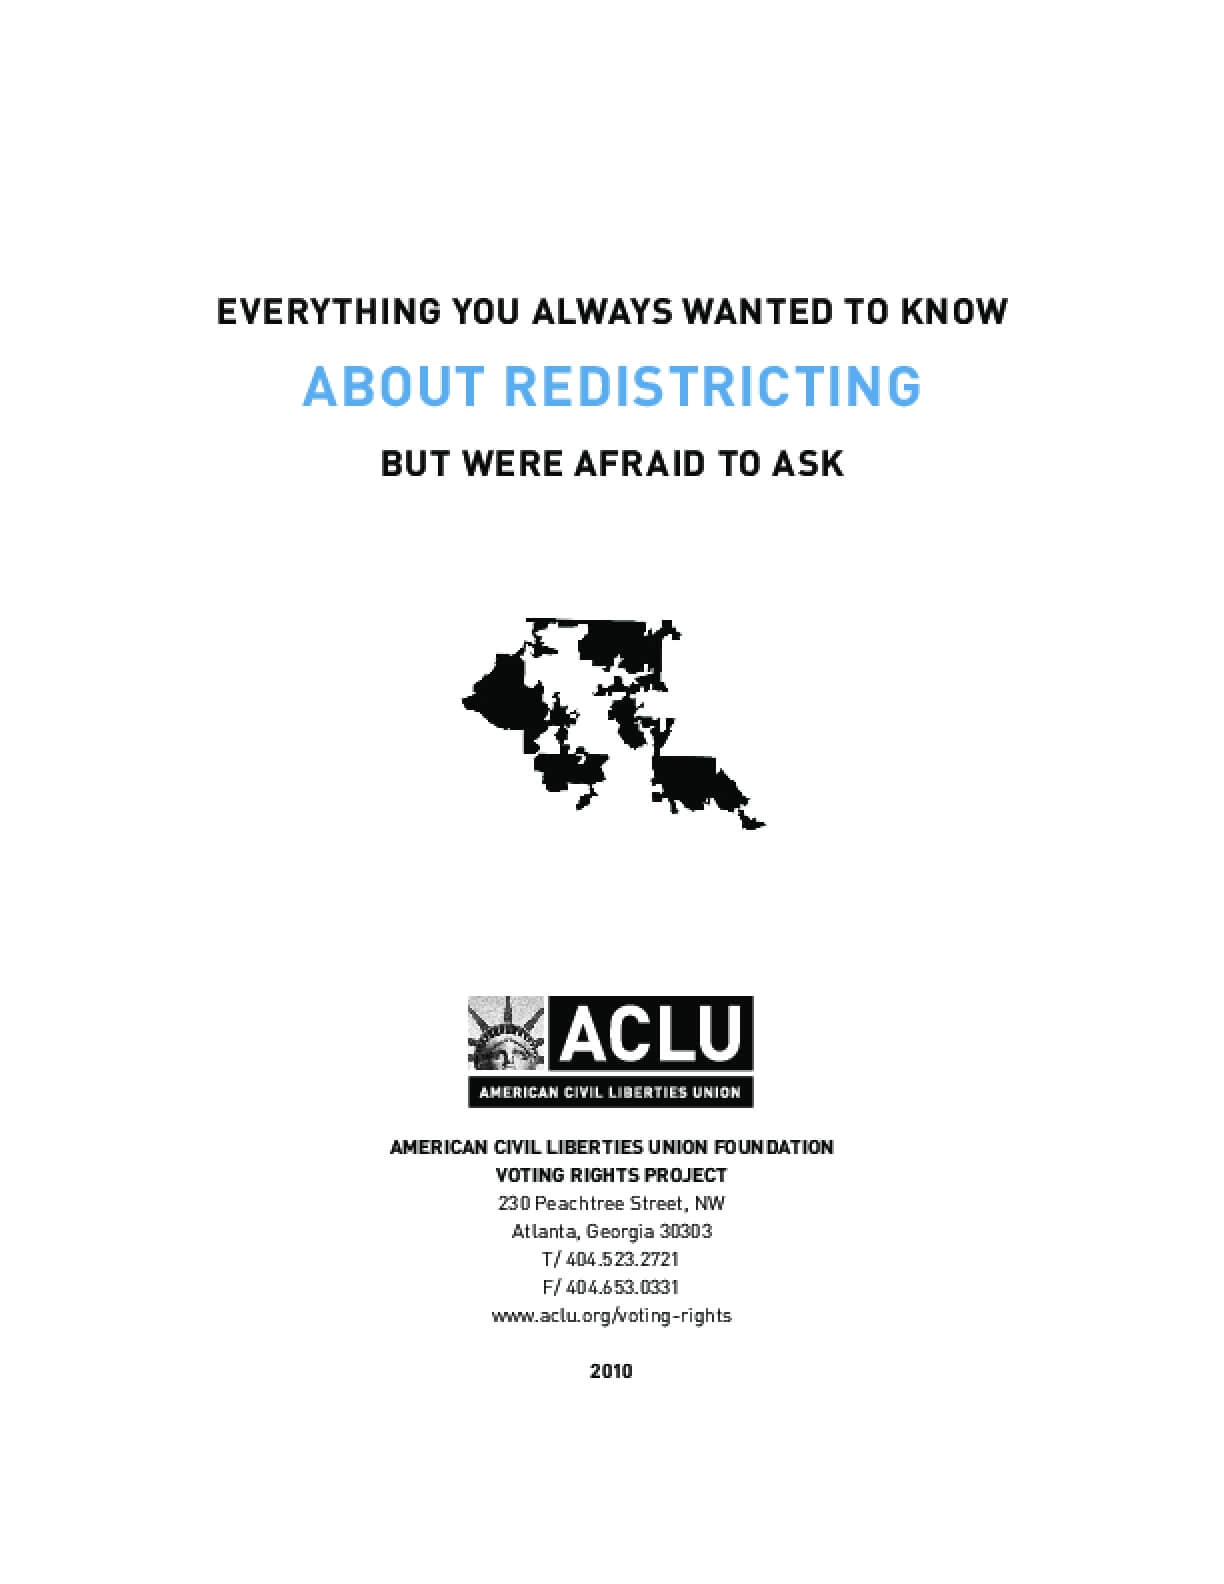 Everything You Always Wanted to Know About Redistricting But Were Afraid to Ask